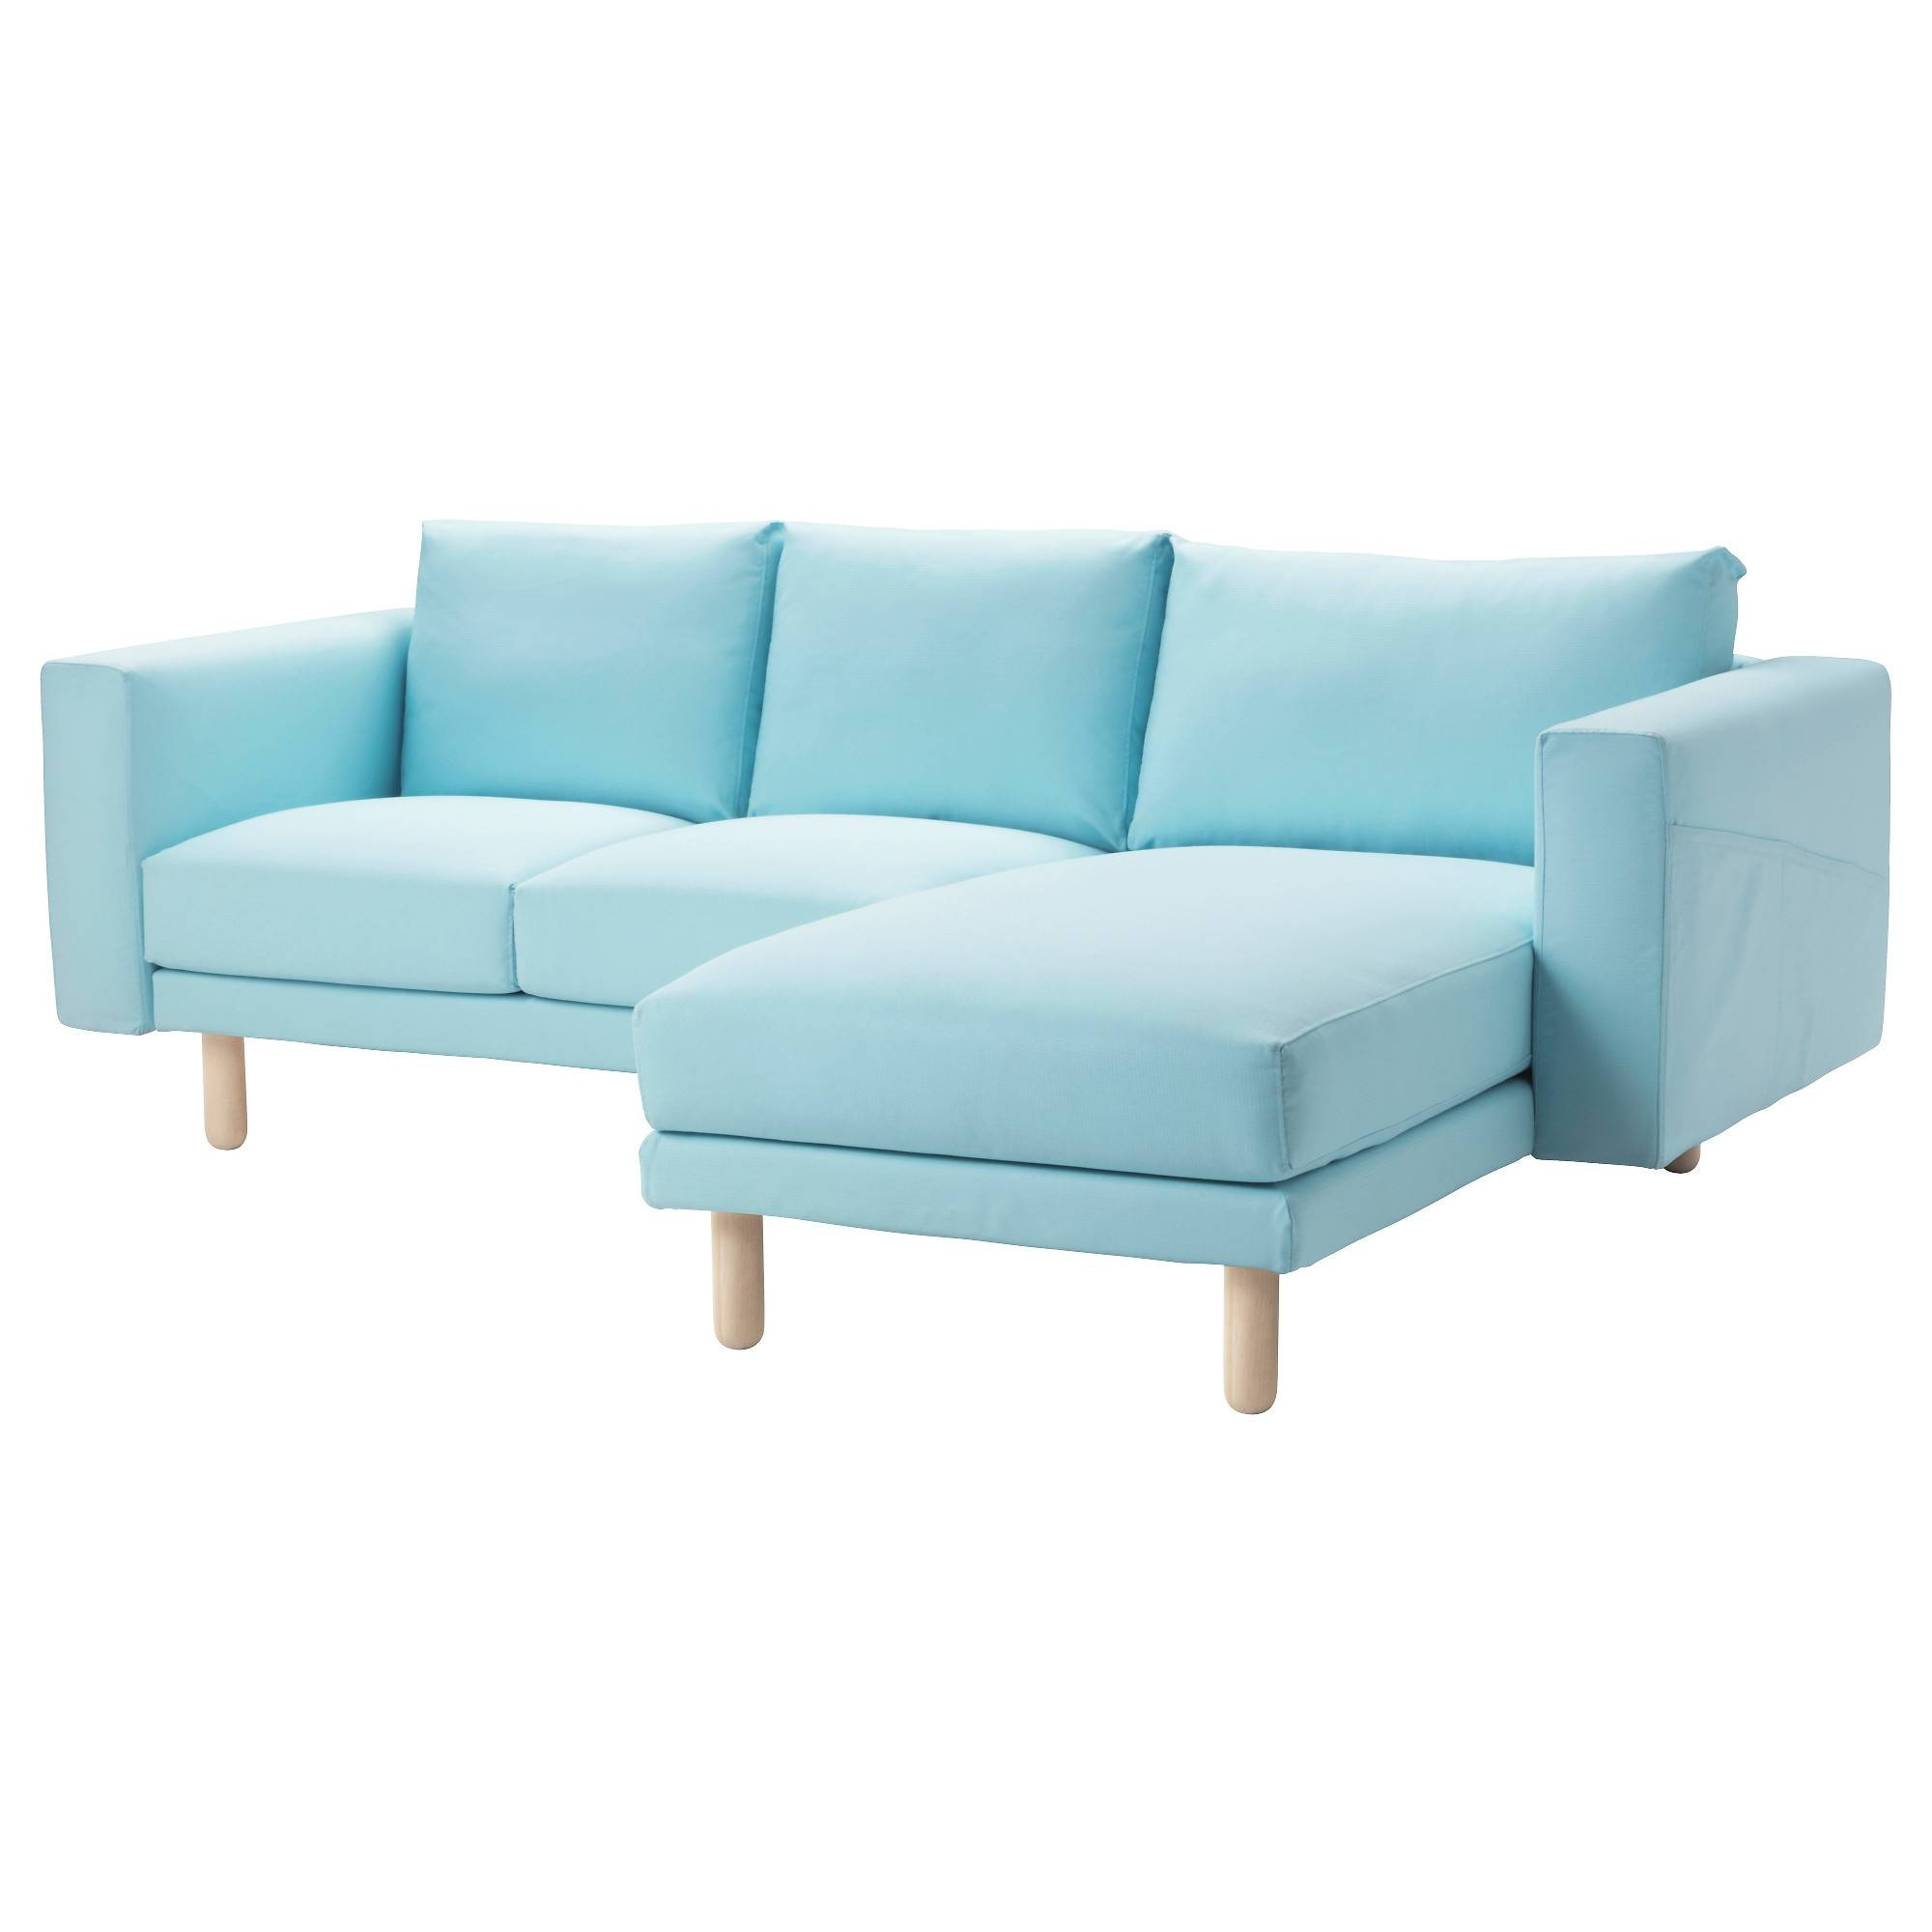 30 Best Collection Of Turquoise Sofa Covers